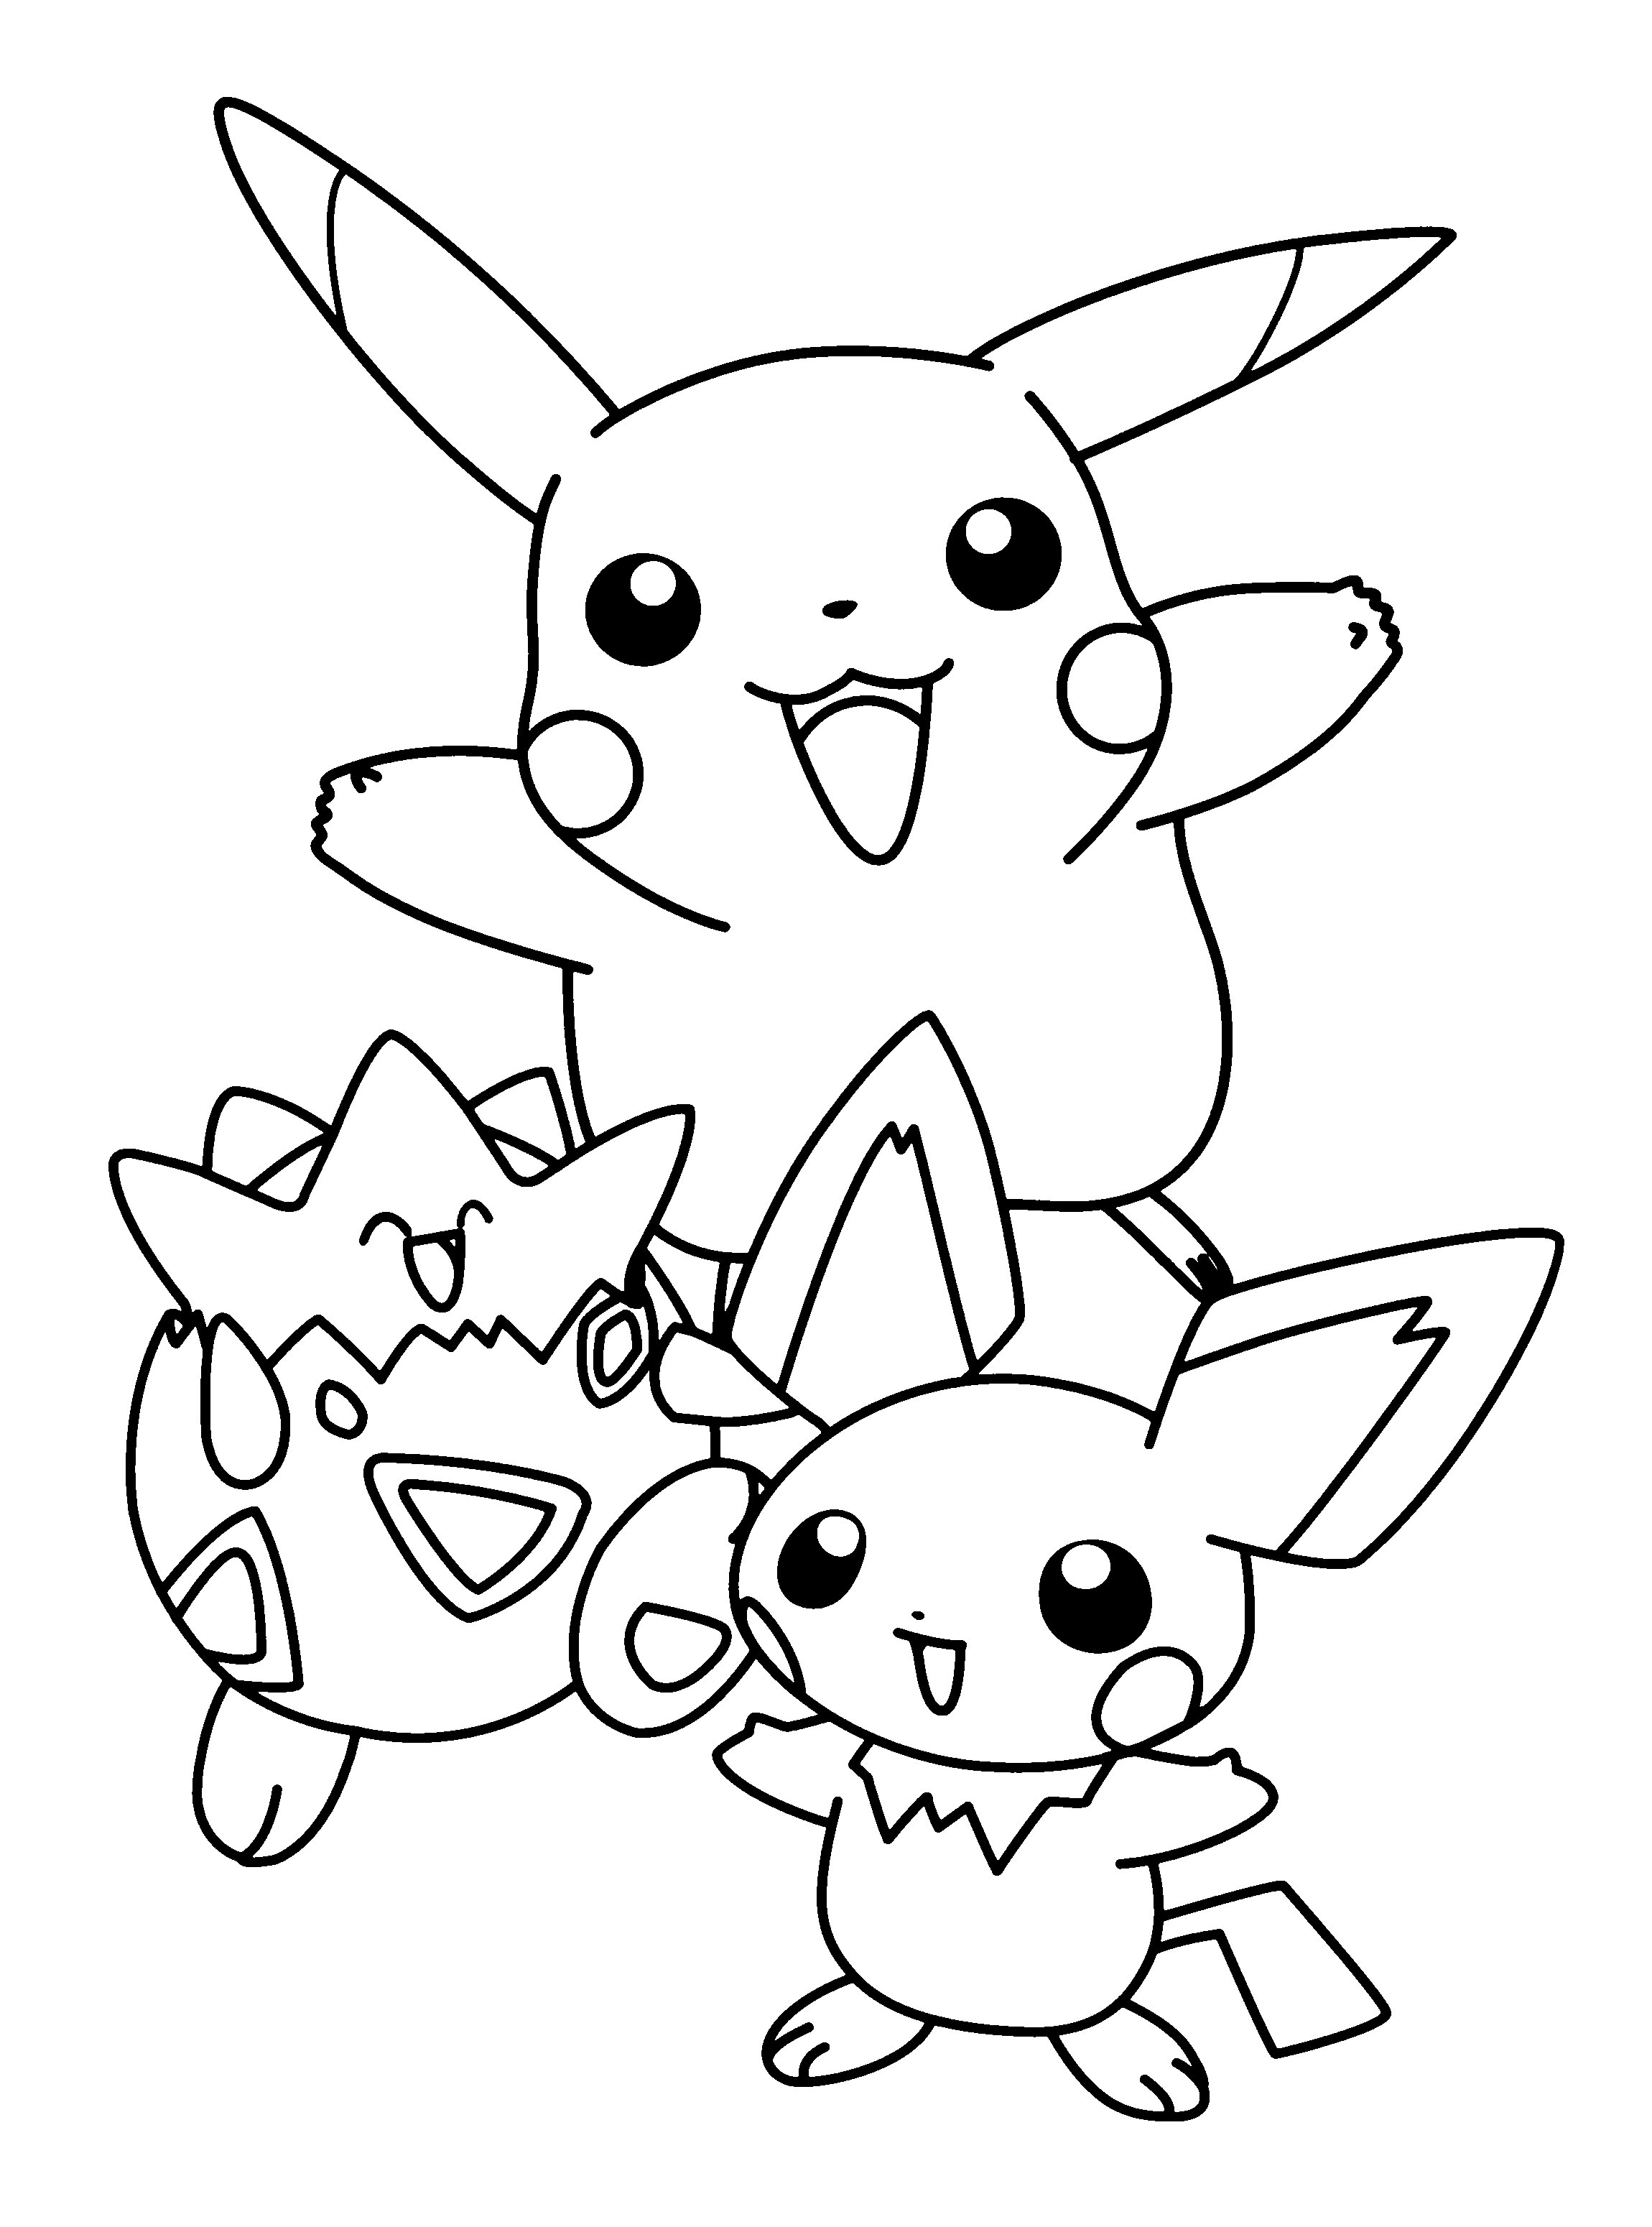 2300x3100 Free Printable Pokemon Coloring Page Eevee Visit Our Page For Free